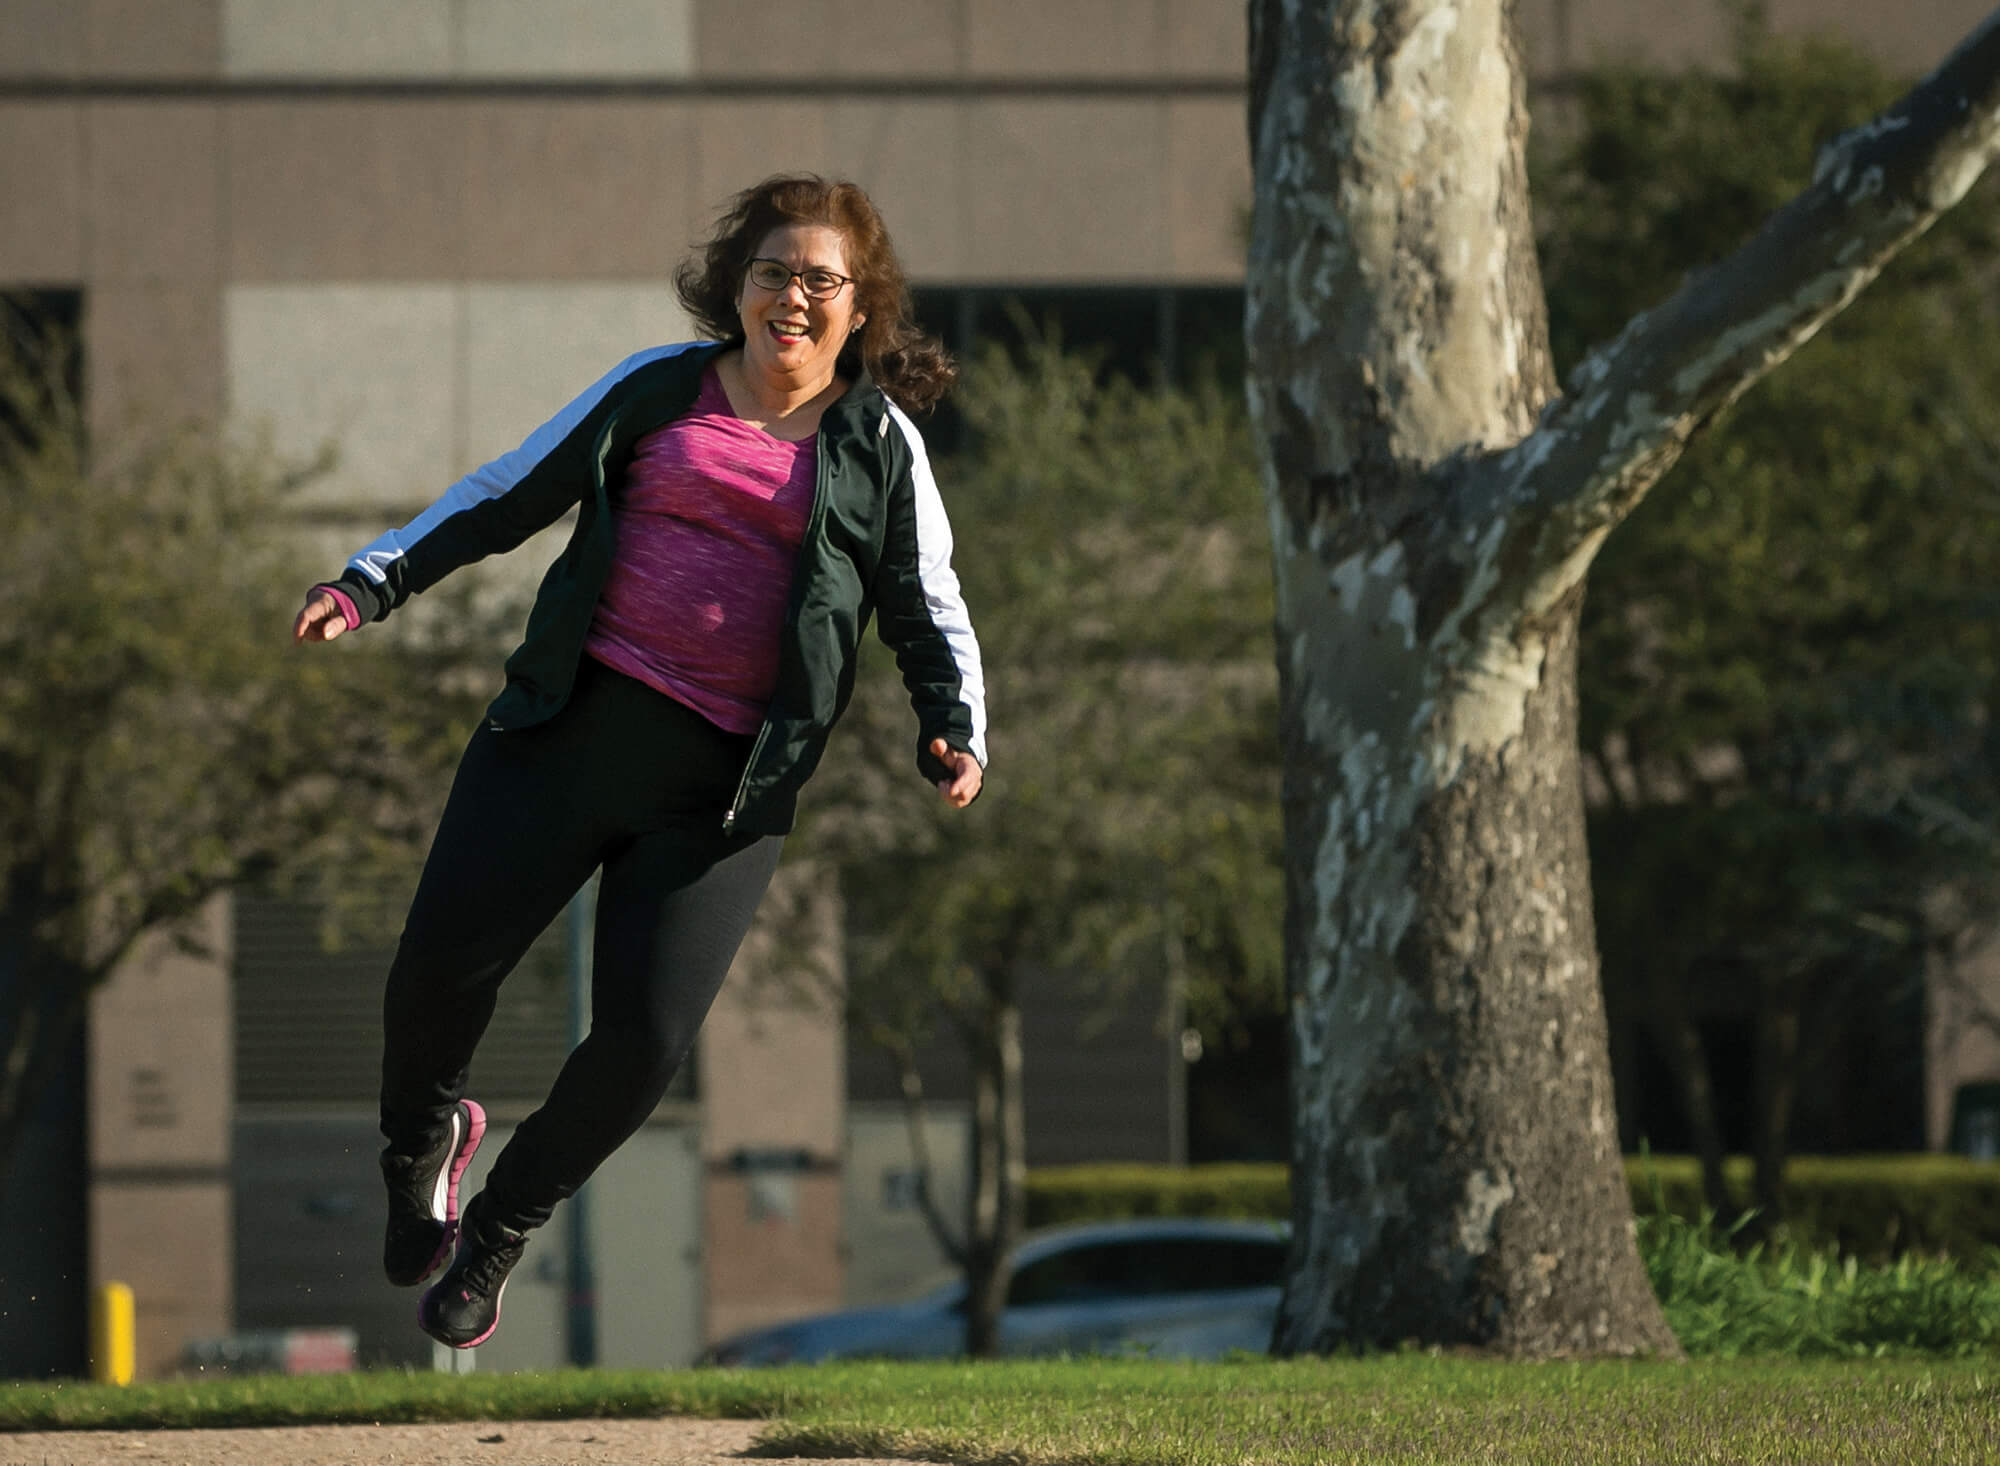 Incorporating physical activity into her routine has completely changed Peña's life.